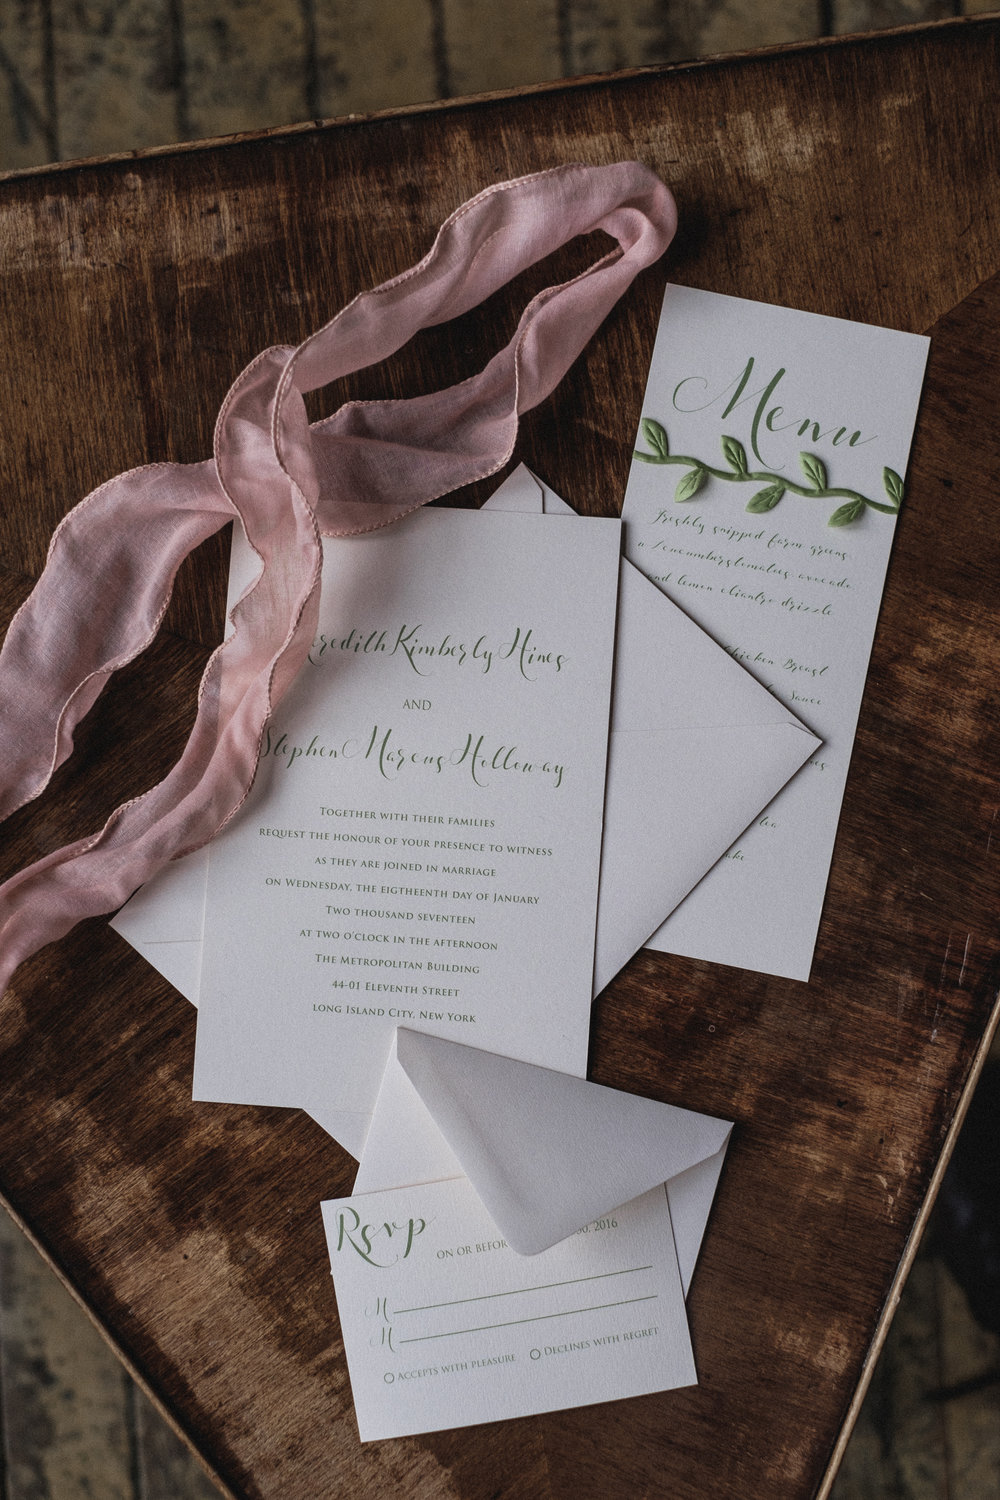 Paper Dreams + Keepsakes | Http://www.paperdreamsllc.com | New York Stationery Designer | Rustic Garden Romance Invitation for Styled Shoot